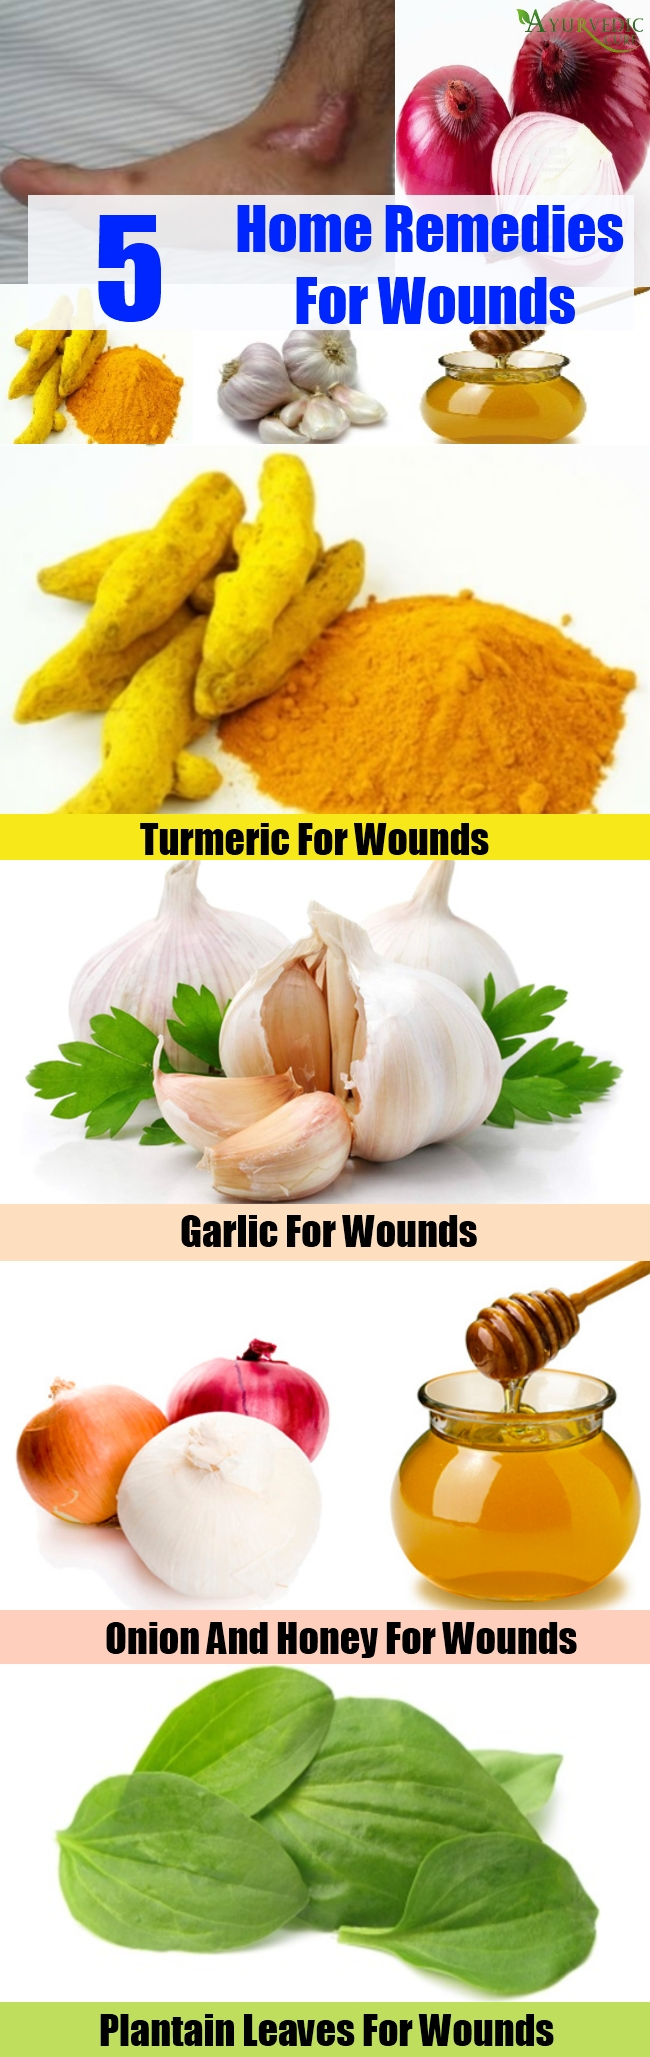 Amazing Home Remedies For Wounds